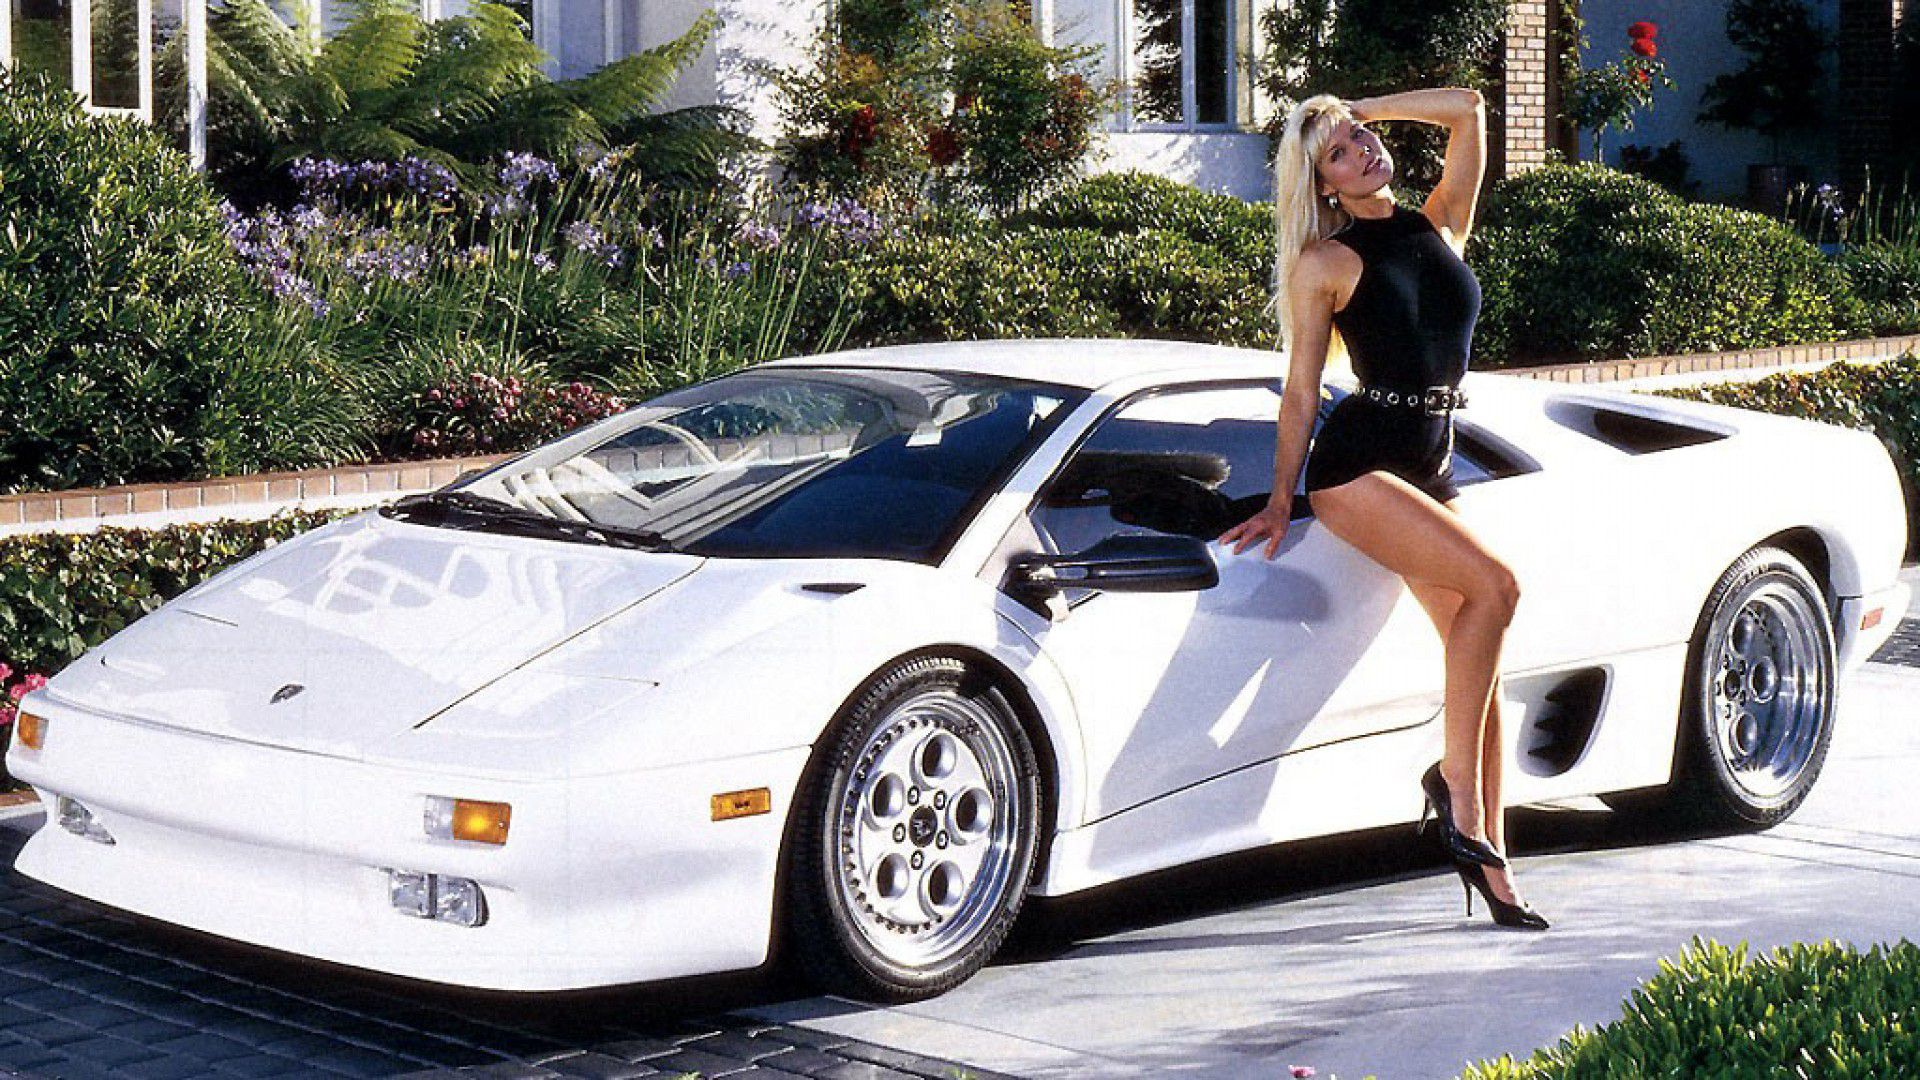 Lamborghini Diablo High Quality Background on Wallpapers Vista